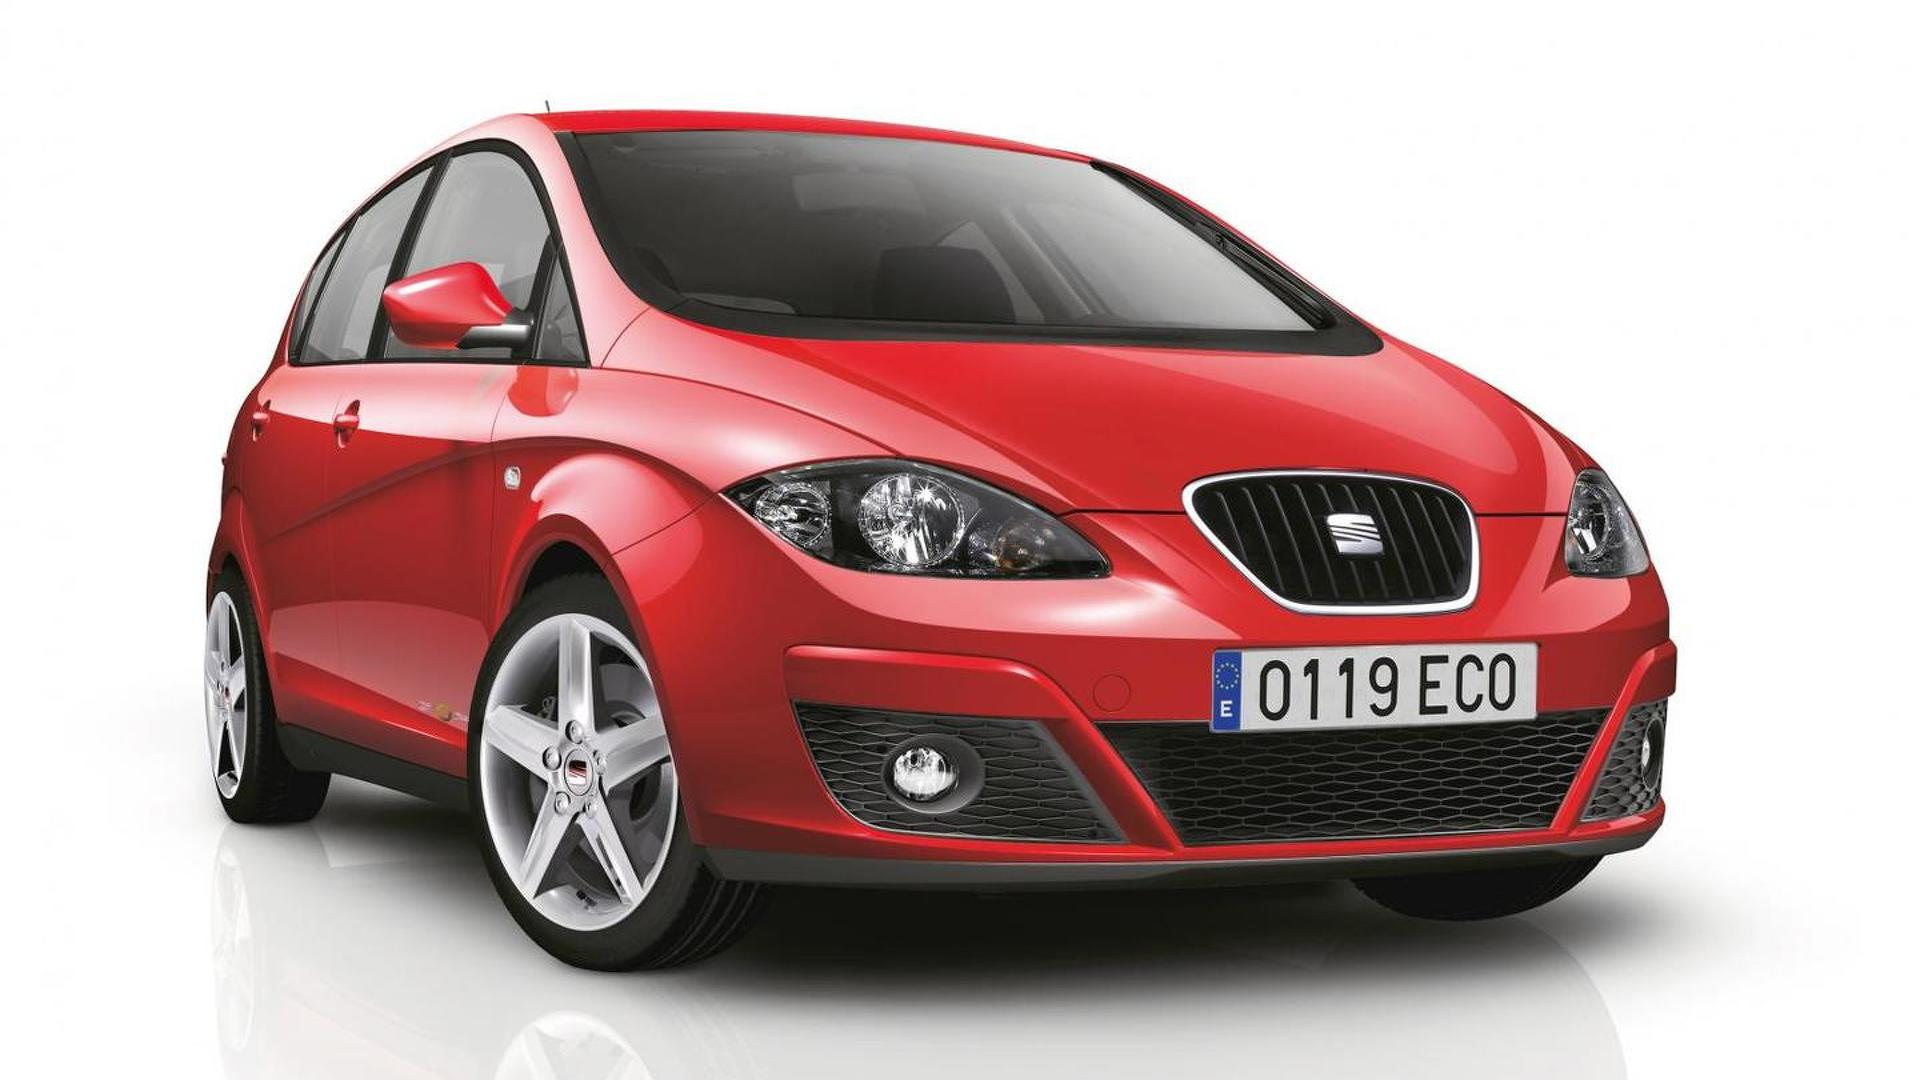 Seat Altea and Altea XL get Copa editions (UK)